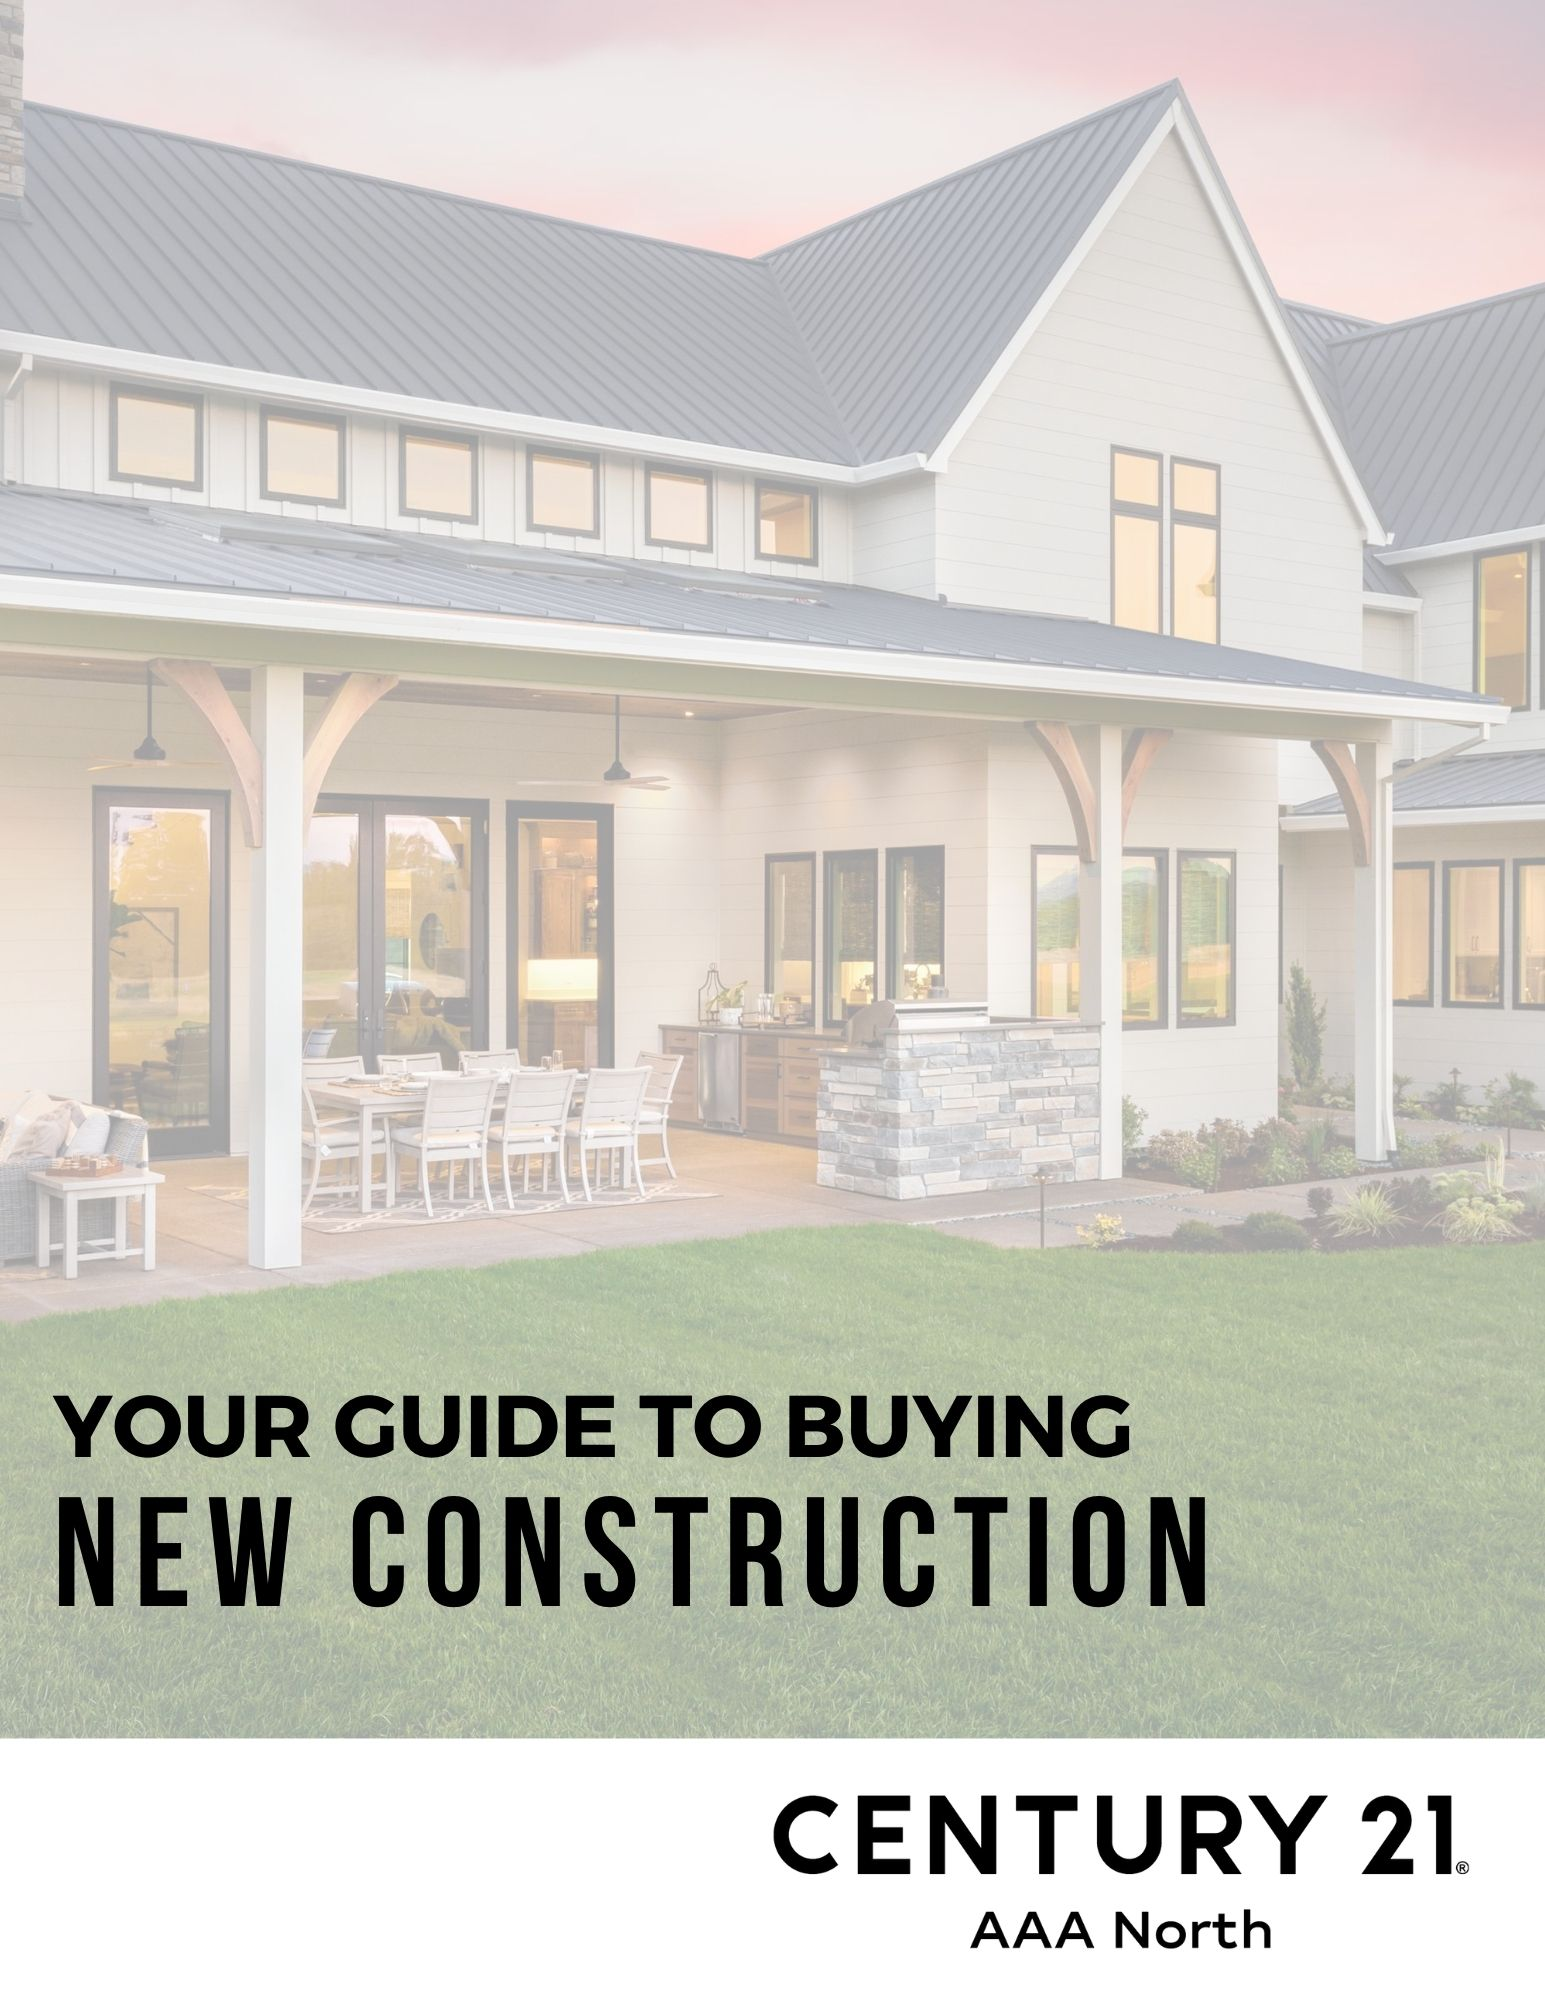 Copy of _ New Construction Guide _.jpg